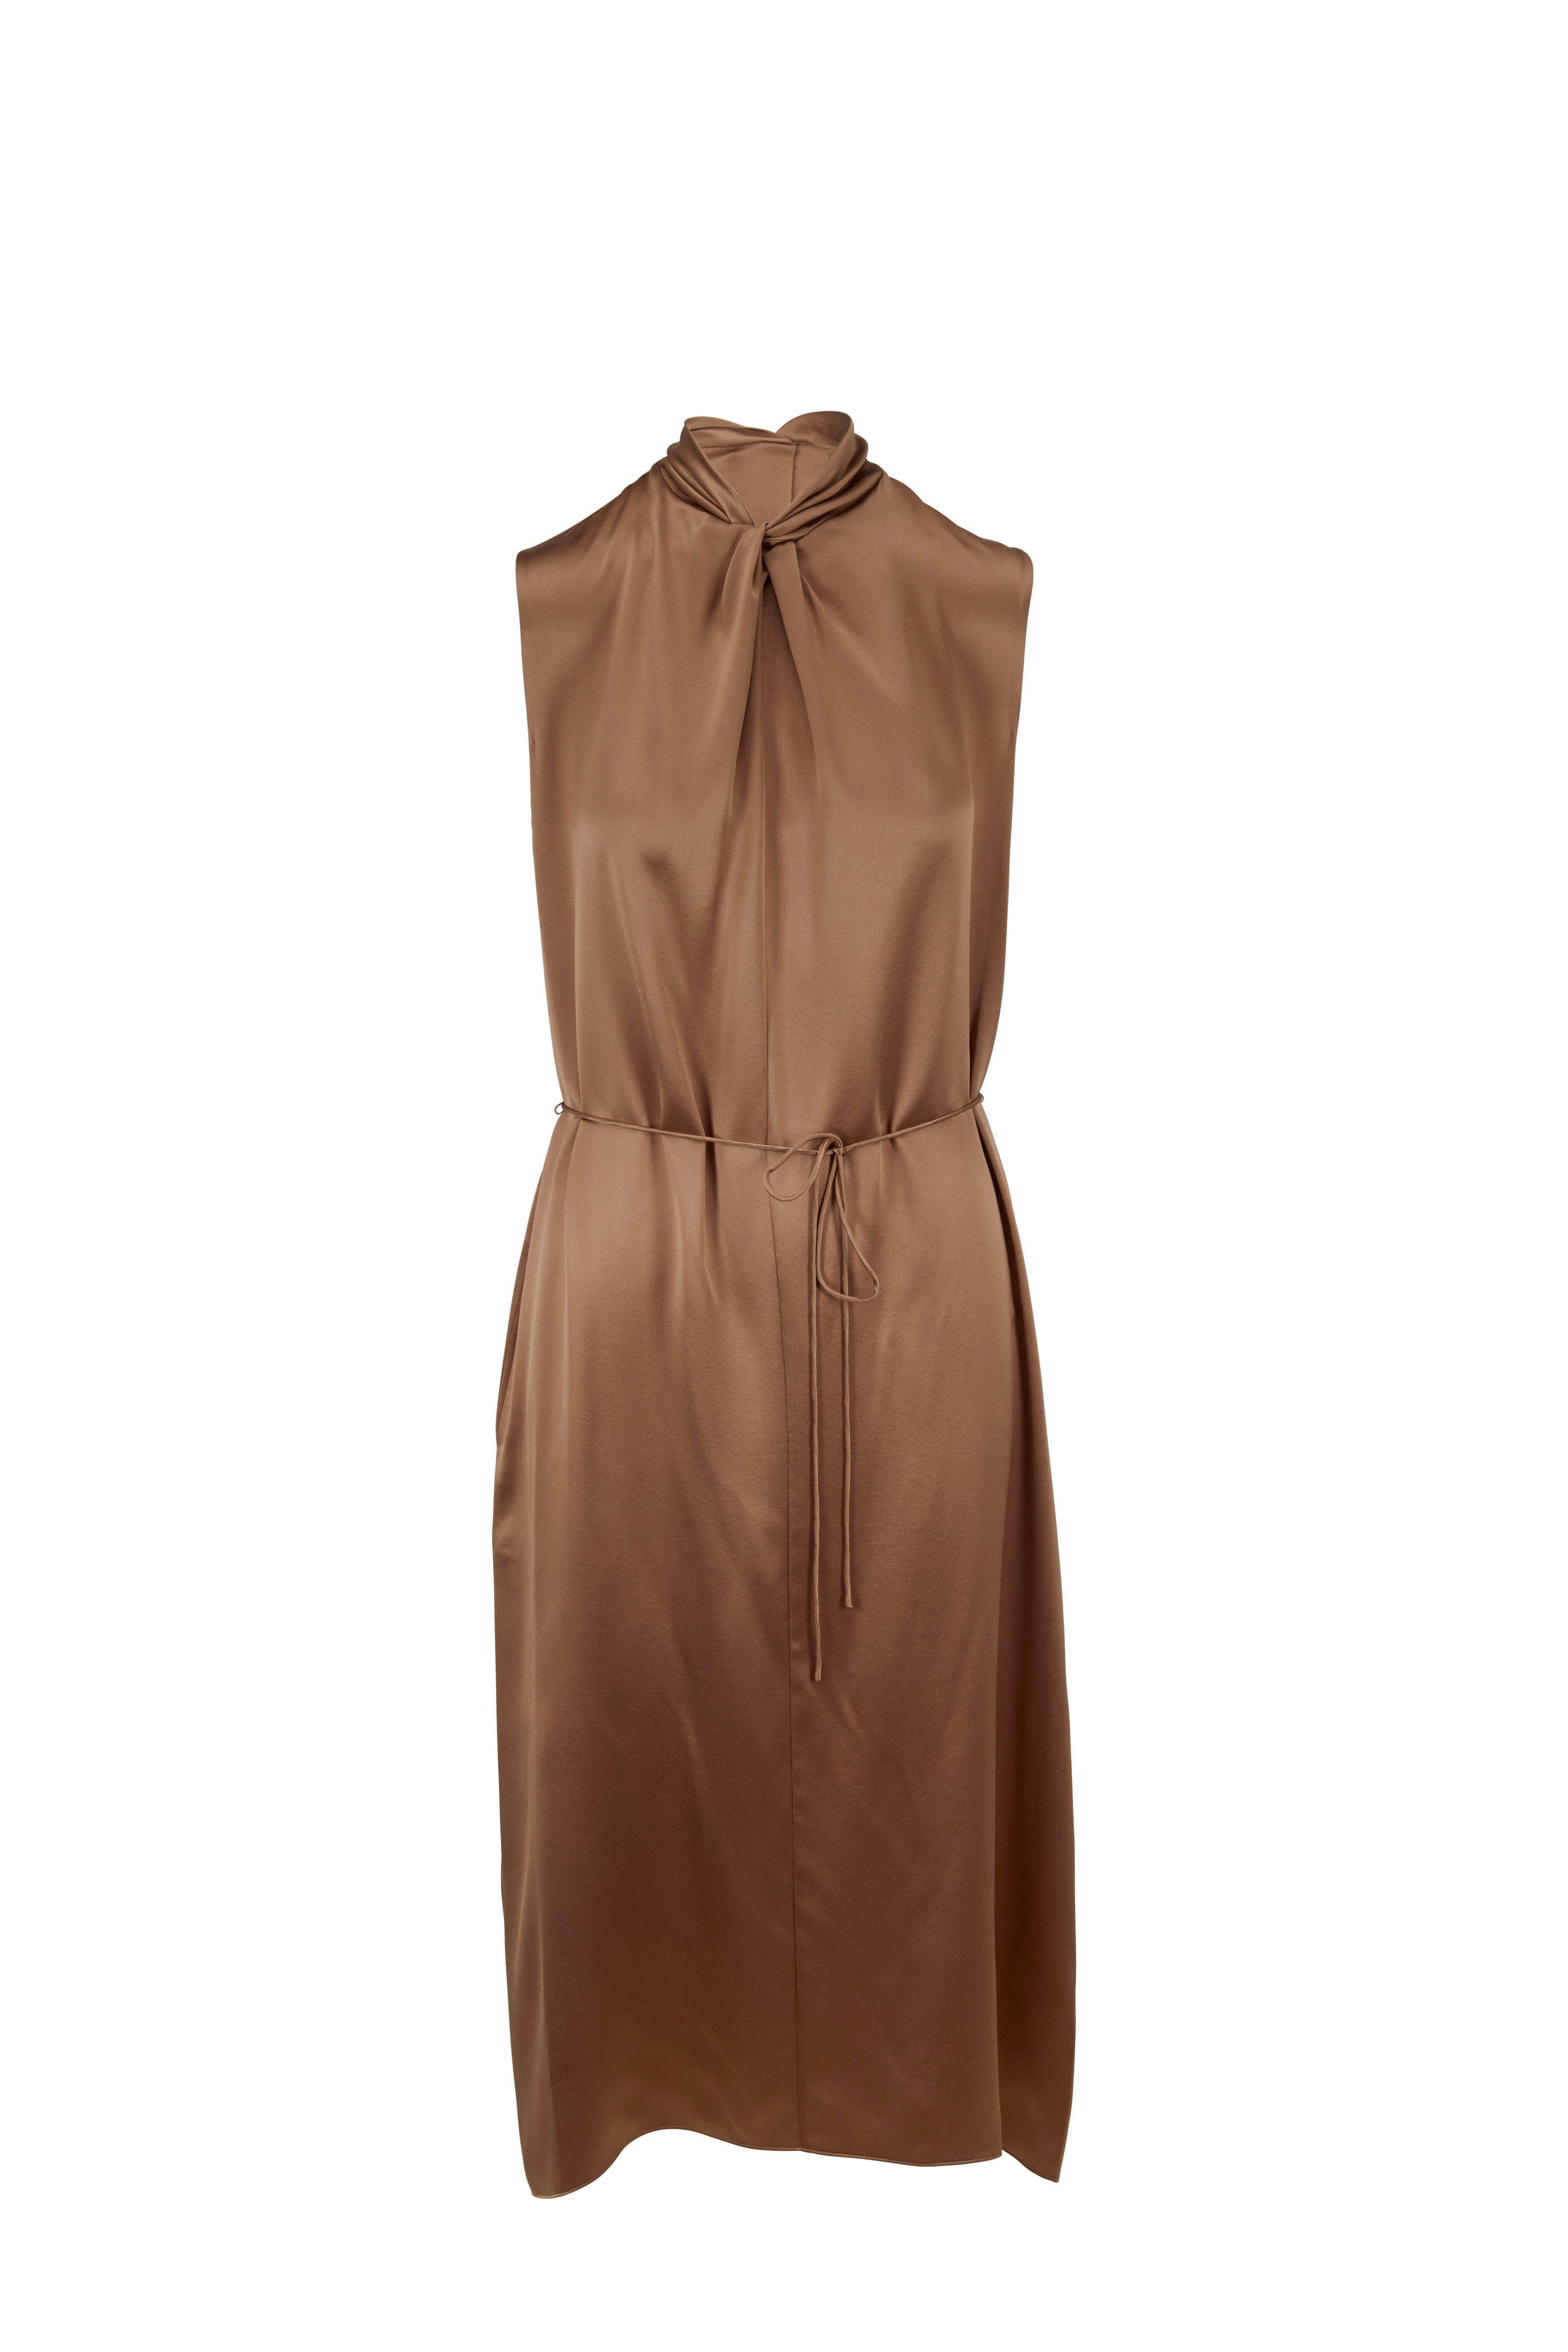 e9d733ec440fd Vince - Earth Silk Satin Knot Neck Sleeveless Dress